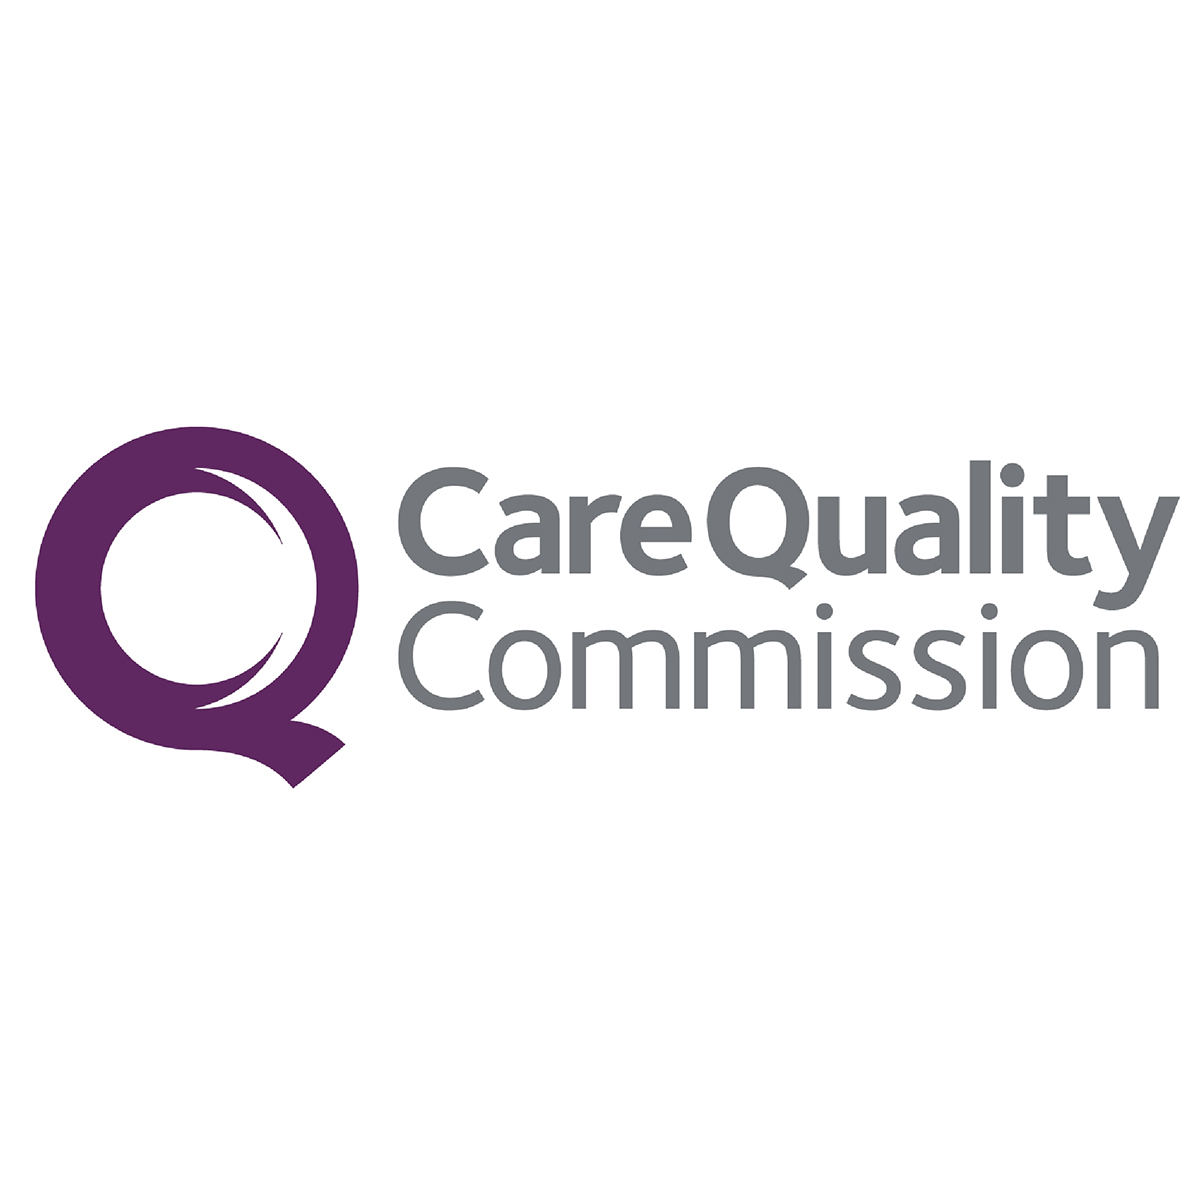 Report from Care Quality Commission raised concerns around patient nutrition